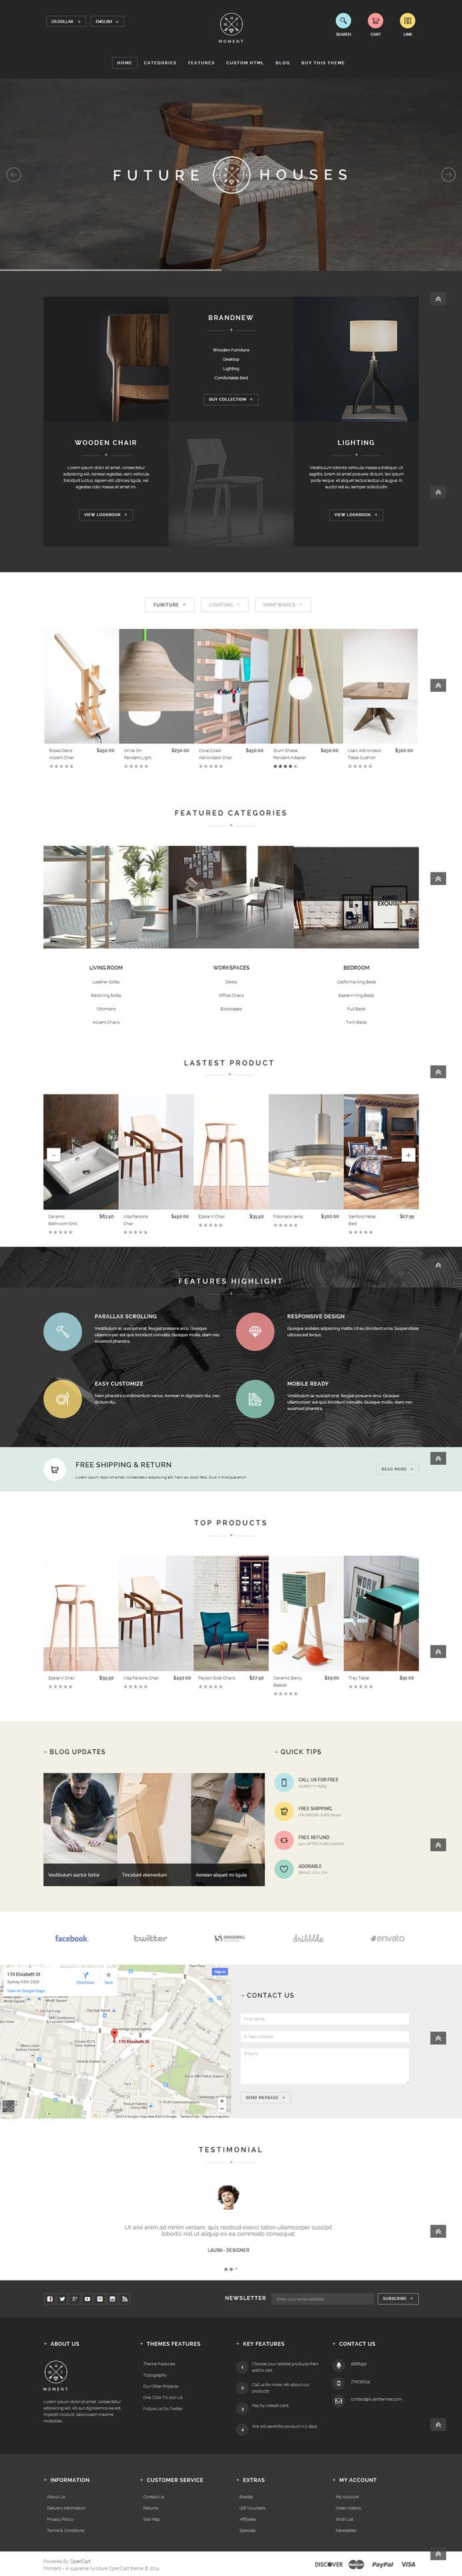 Web Design / furniture, minimal, minimalist, clean, website, dark Repiined http://rmichaeldavies.com/